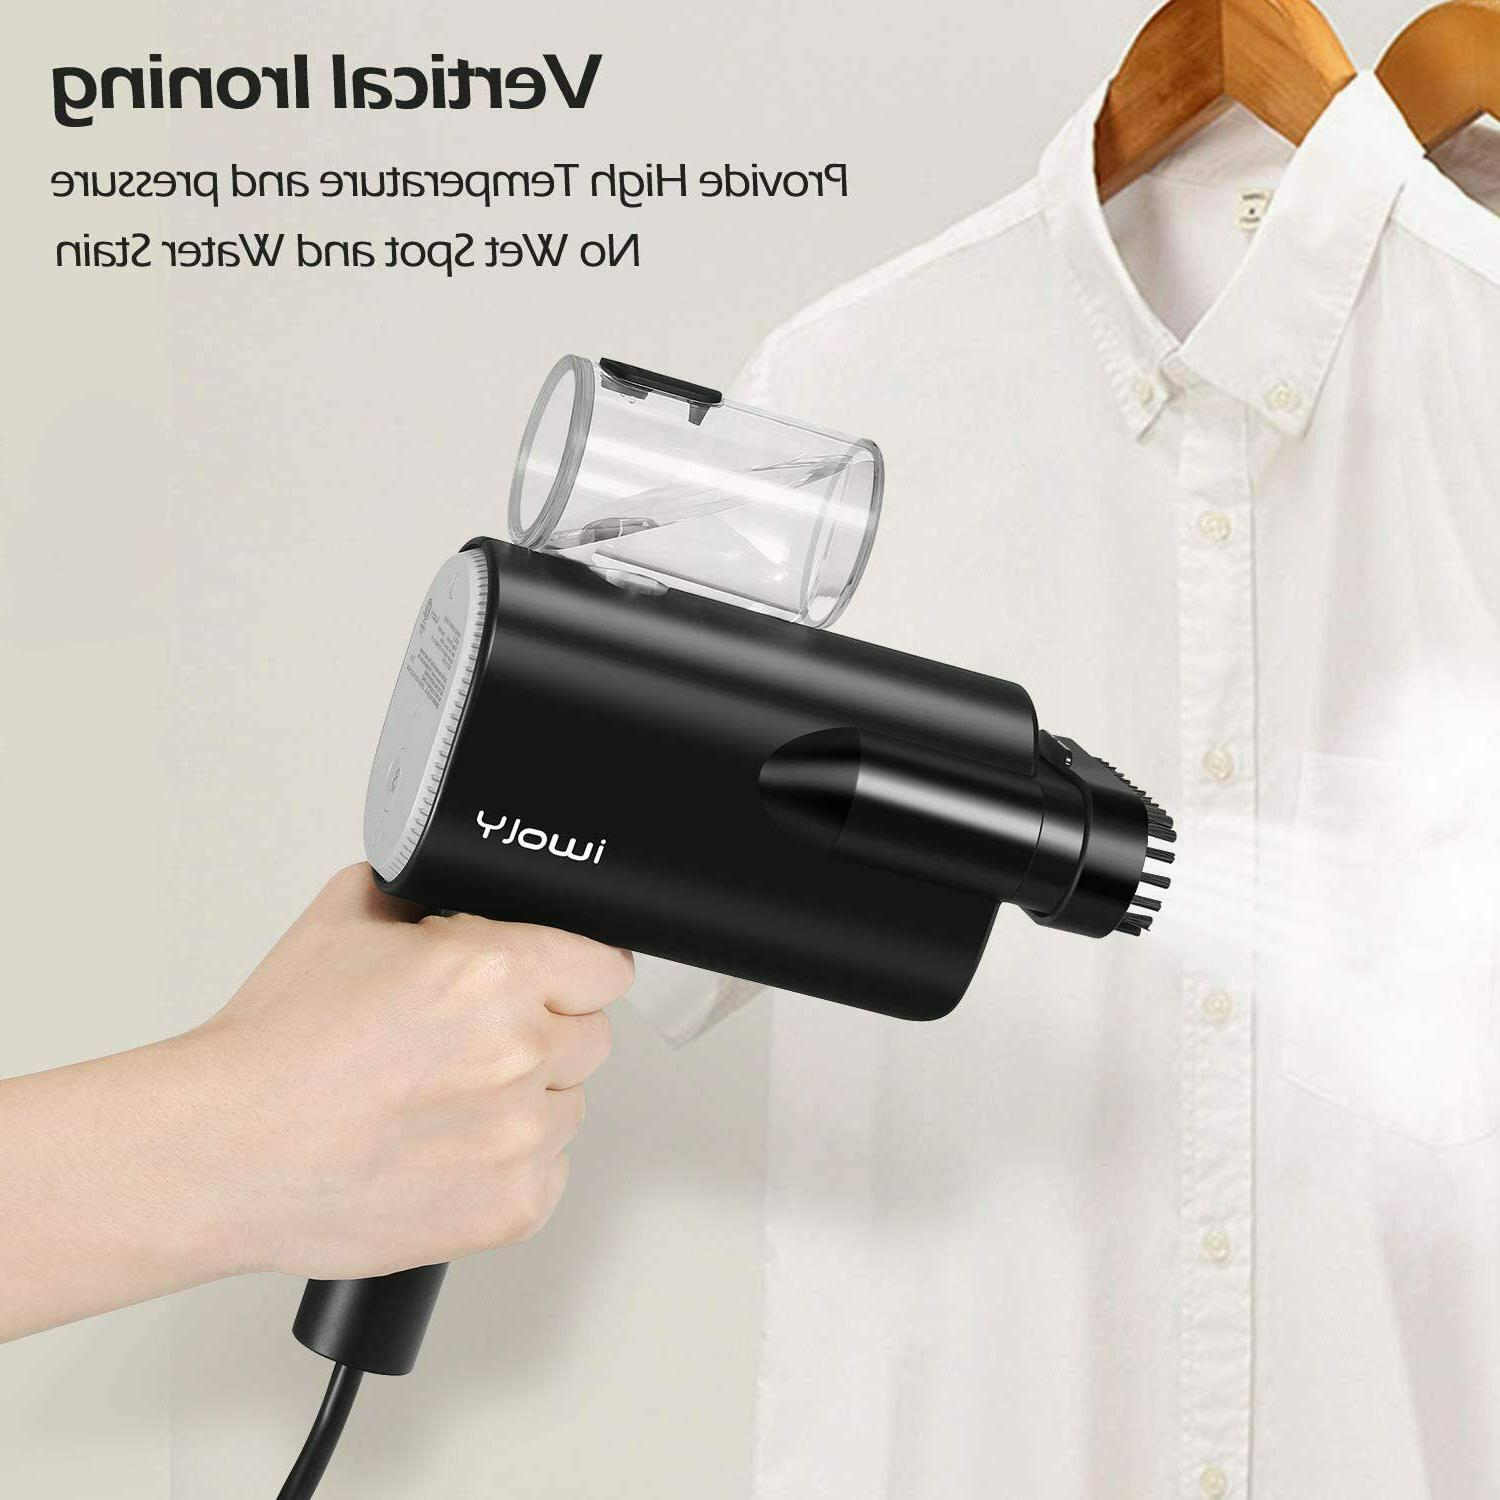 Travel Iron For Clothes Steamer Fabric Hand Portable Handheld